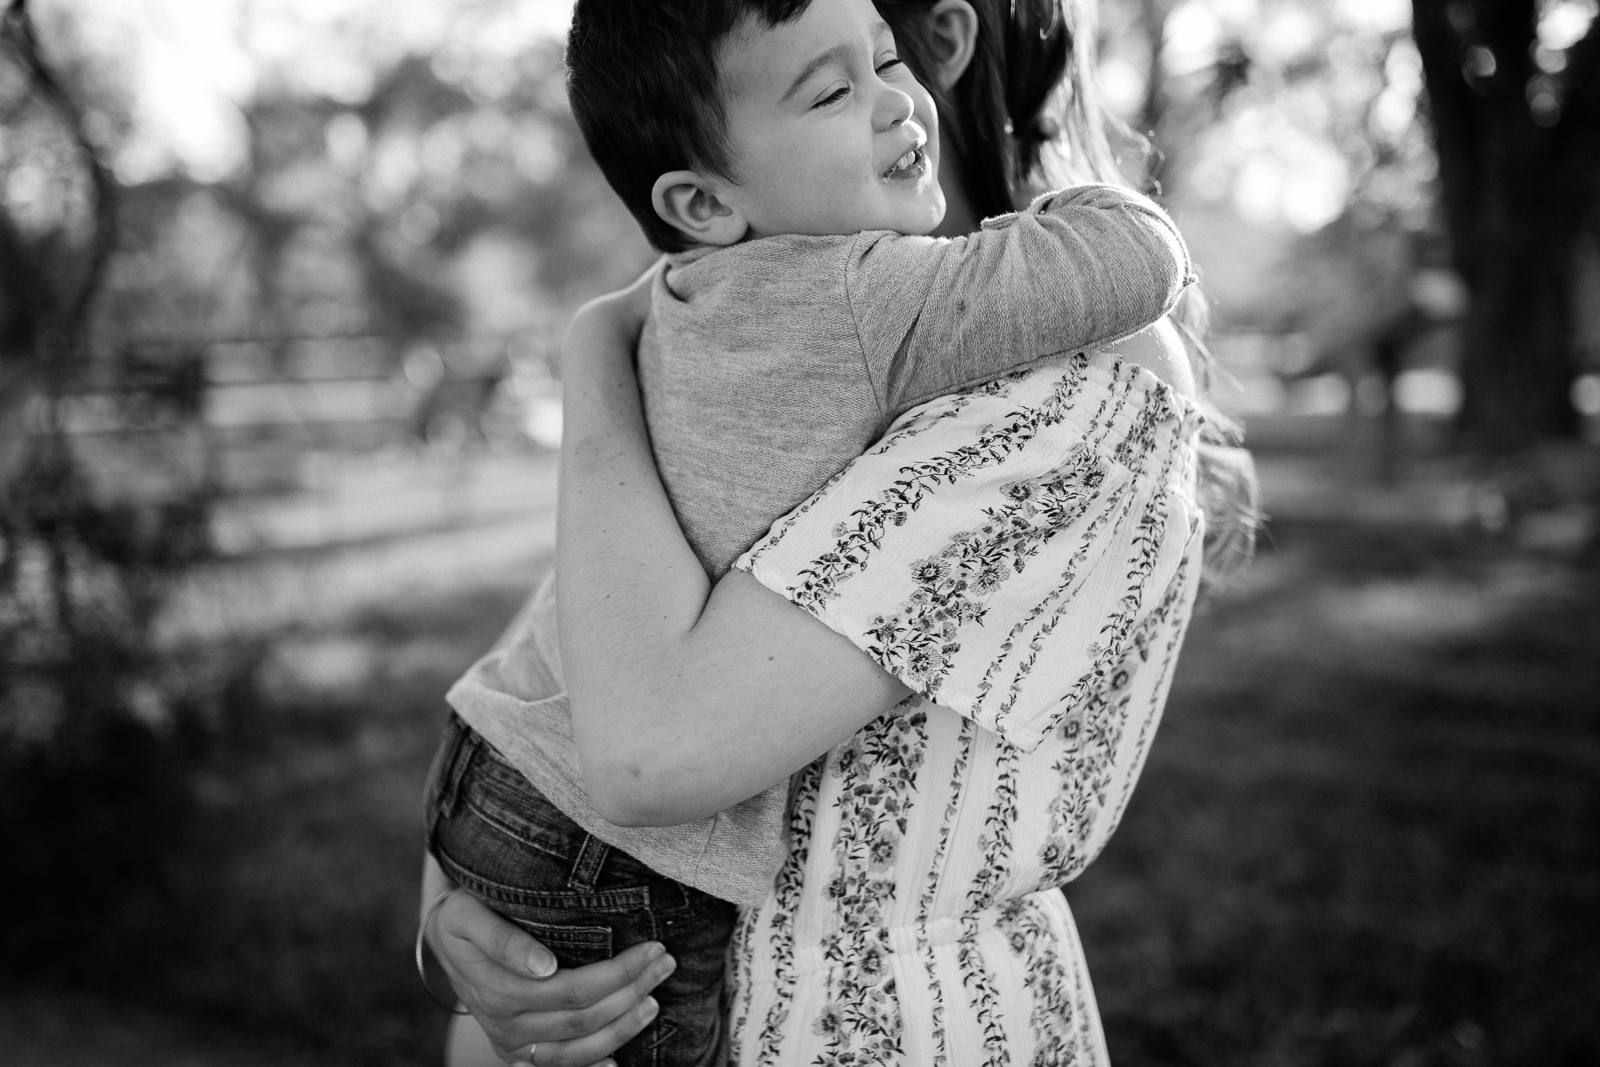 Black and white potrait of son hugging his mother, emotive family photography, Kansas City lifestyle photographer, Rebecca Clair Photography